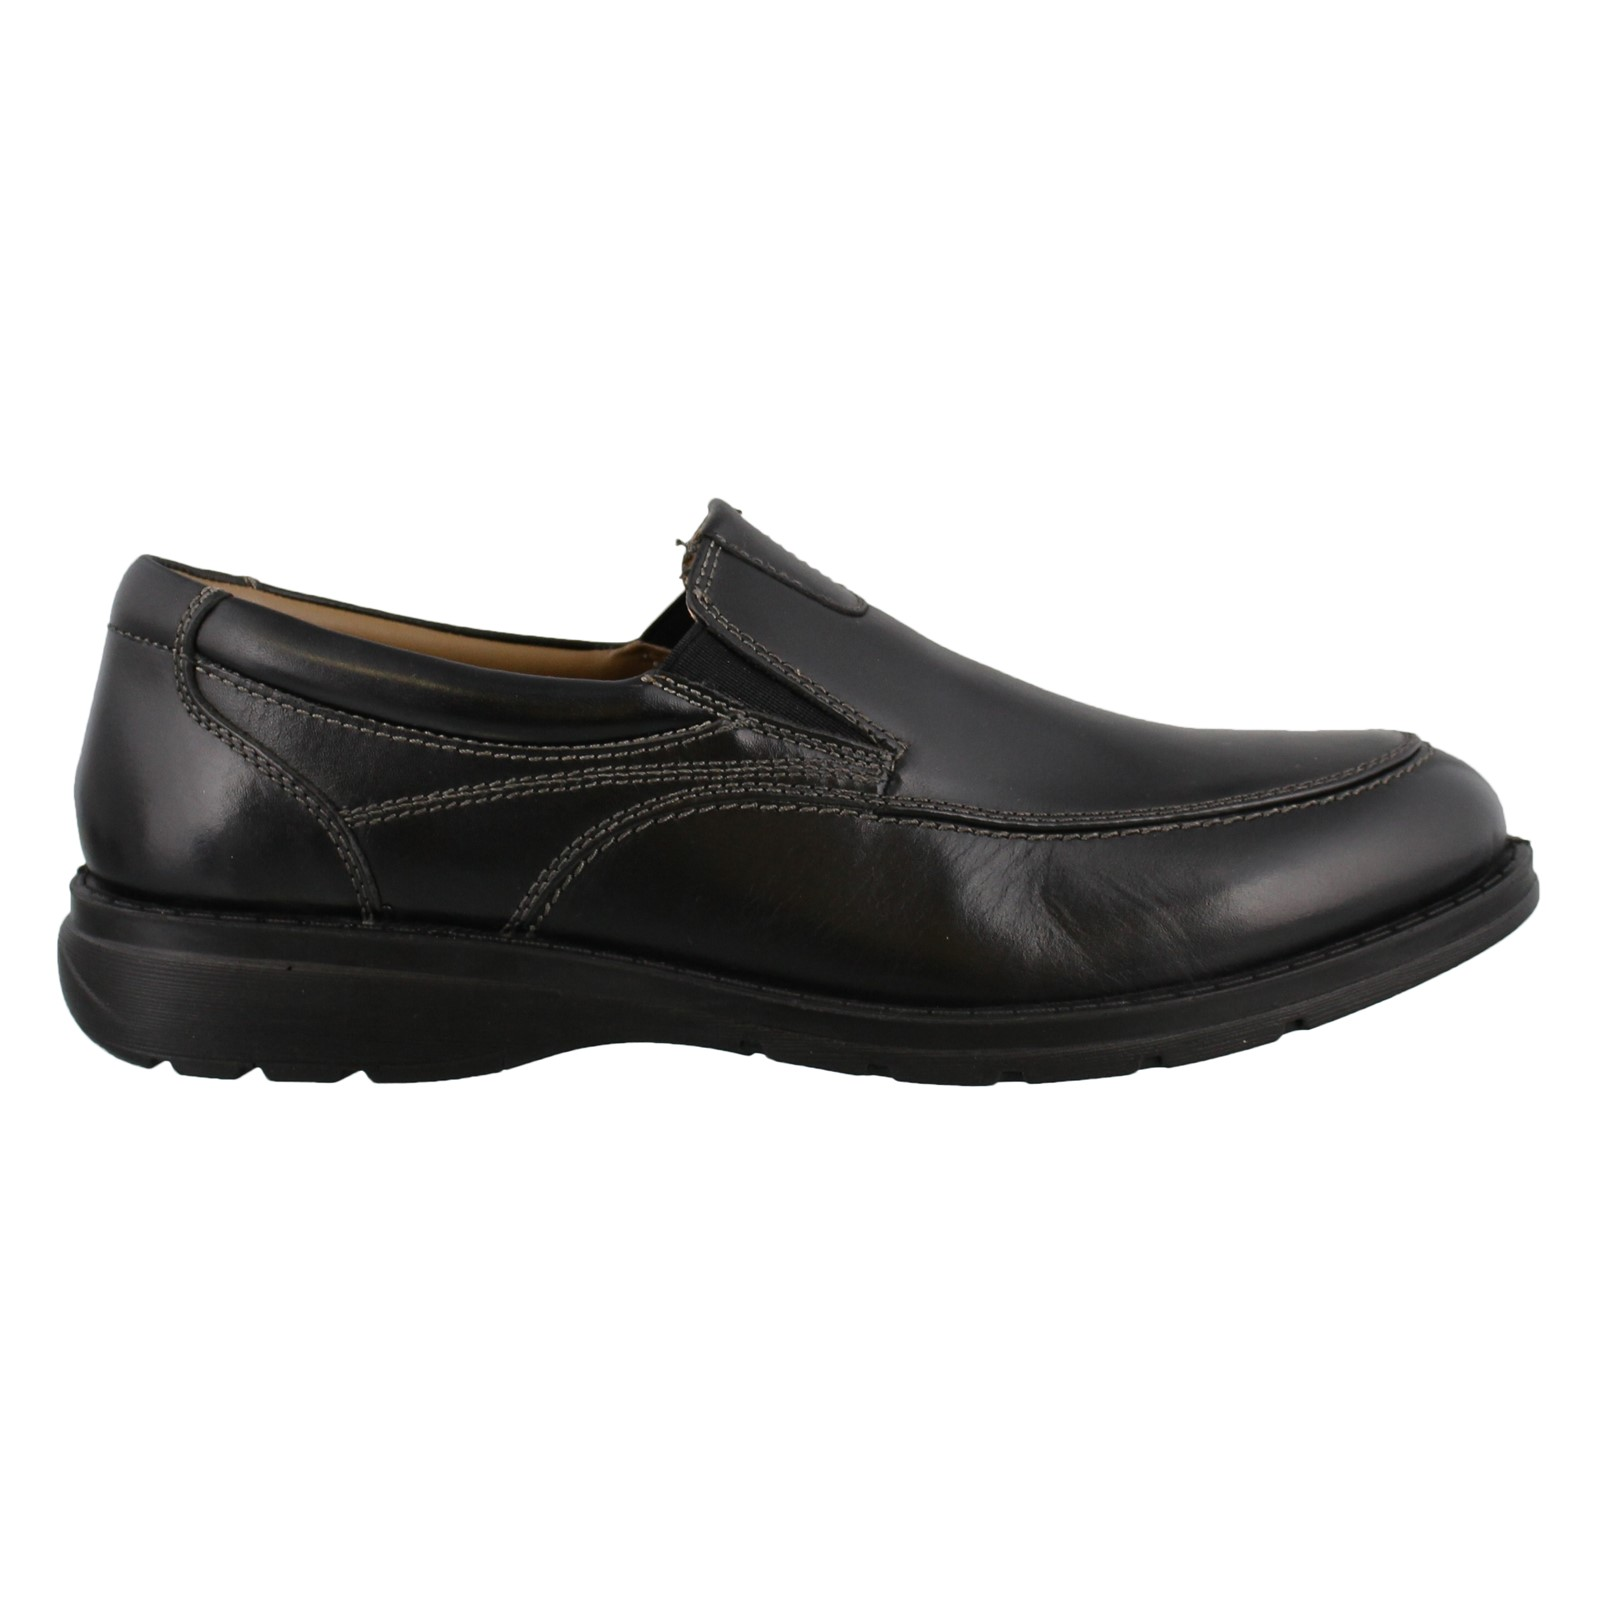 Men's Dockers, Calamar Slip on Shoes